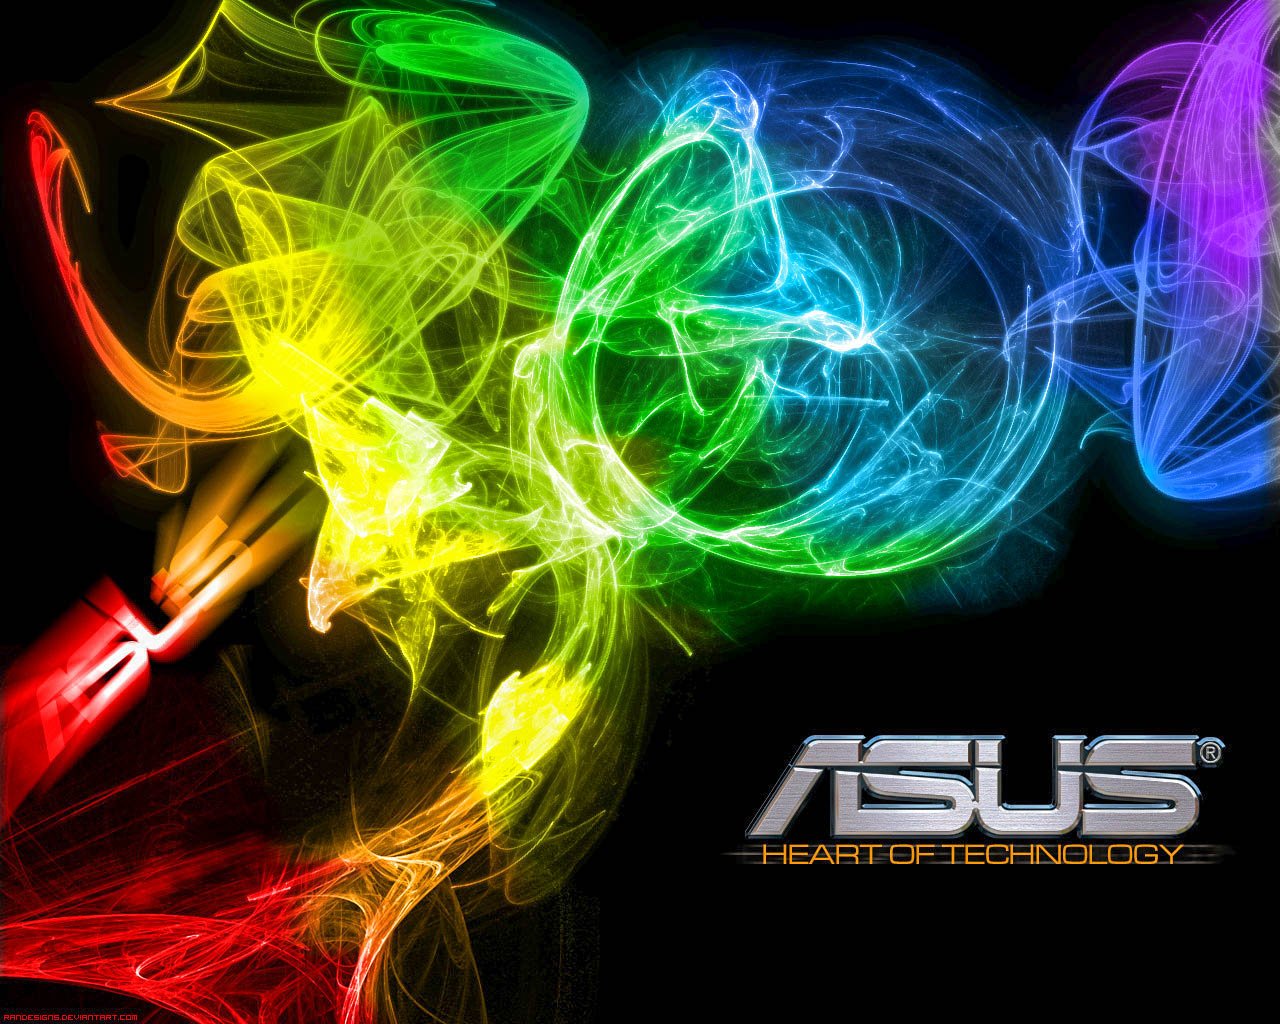 Asus Phone Wallpaper: Asus Technology HD Wallpapers (High Quality)